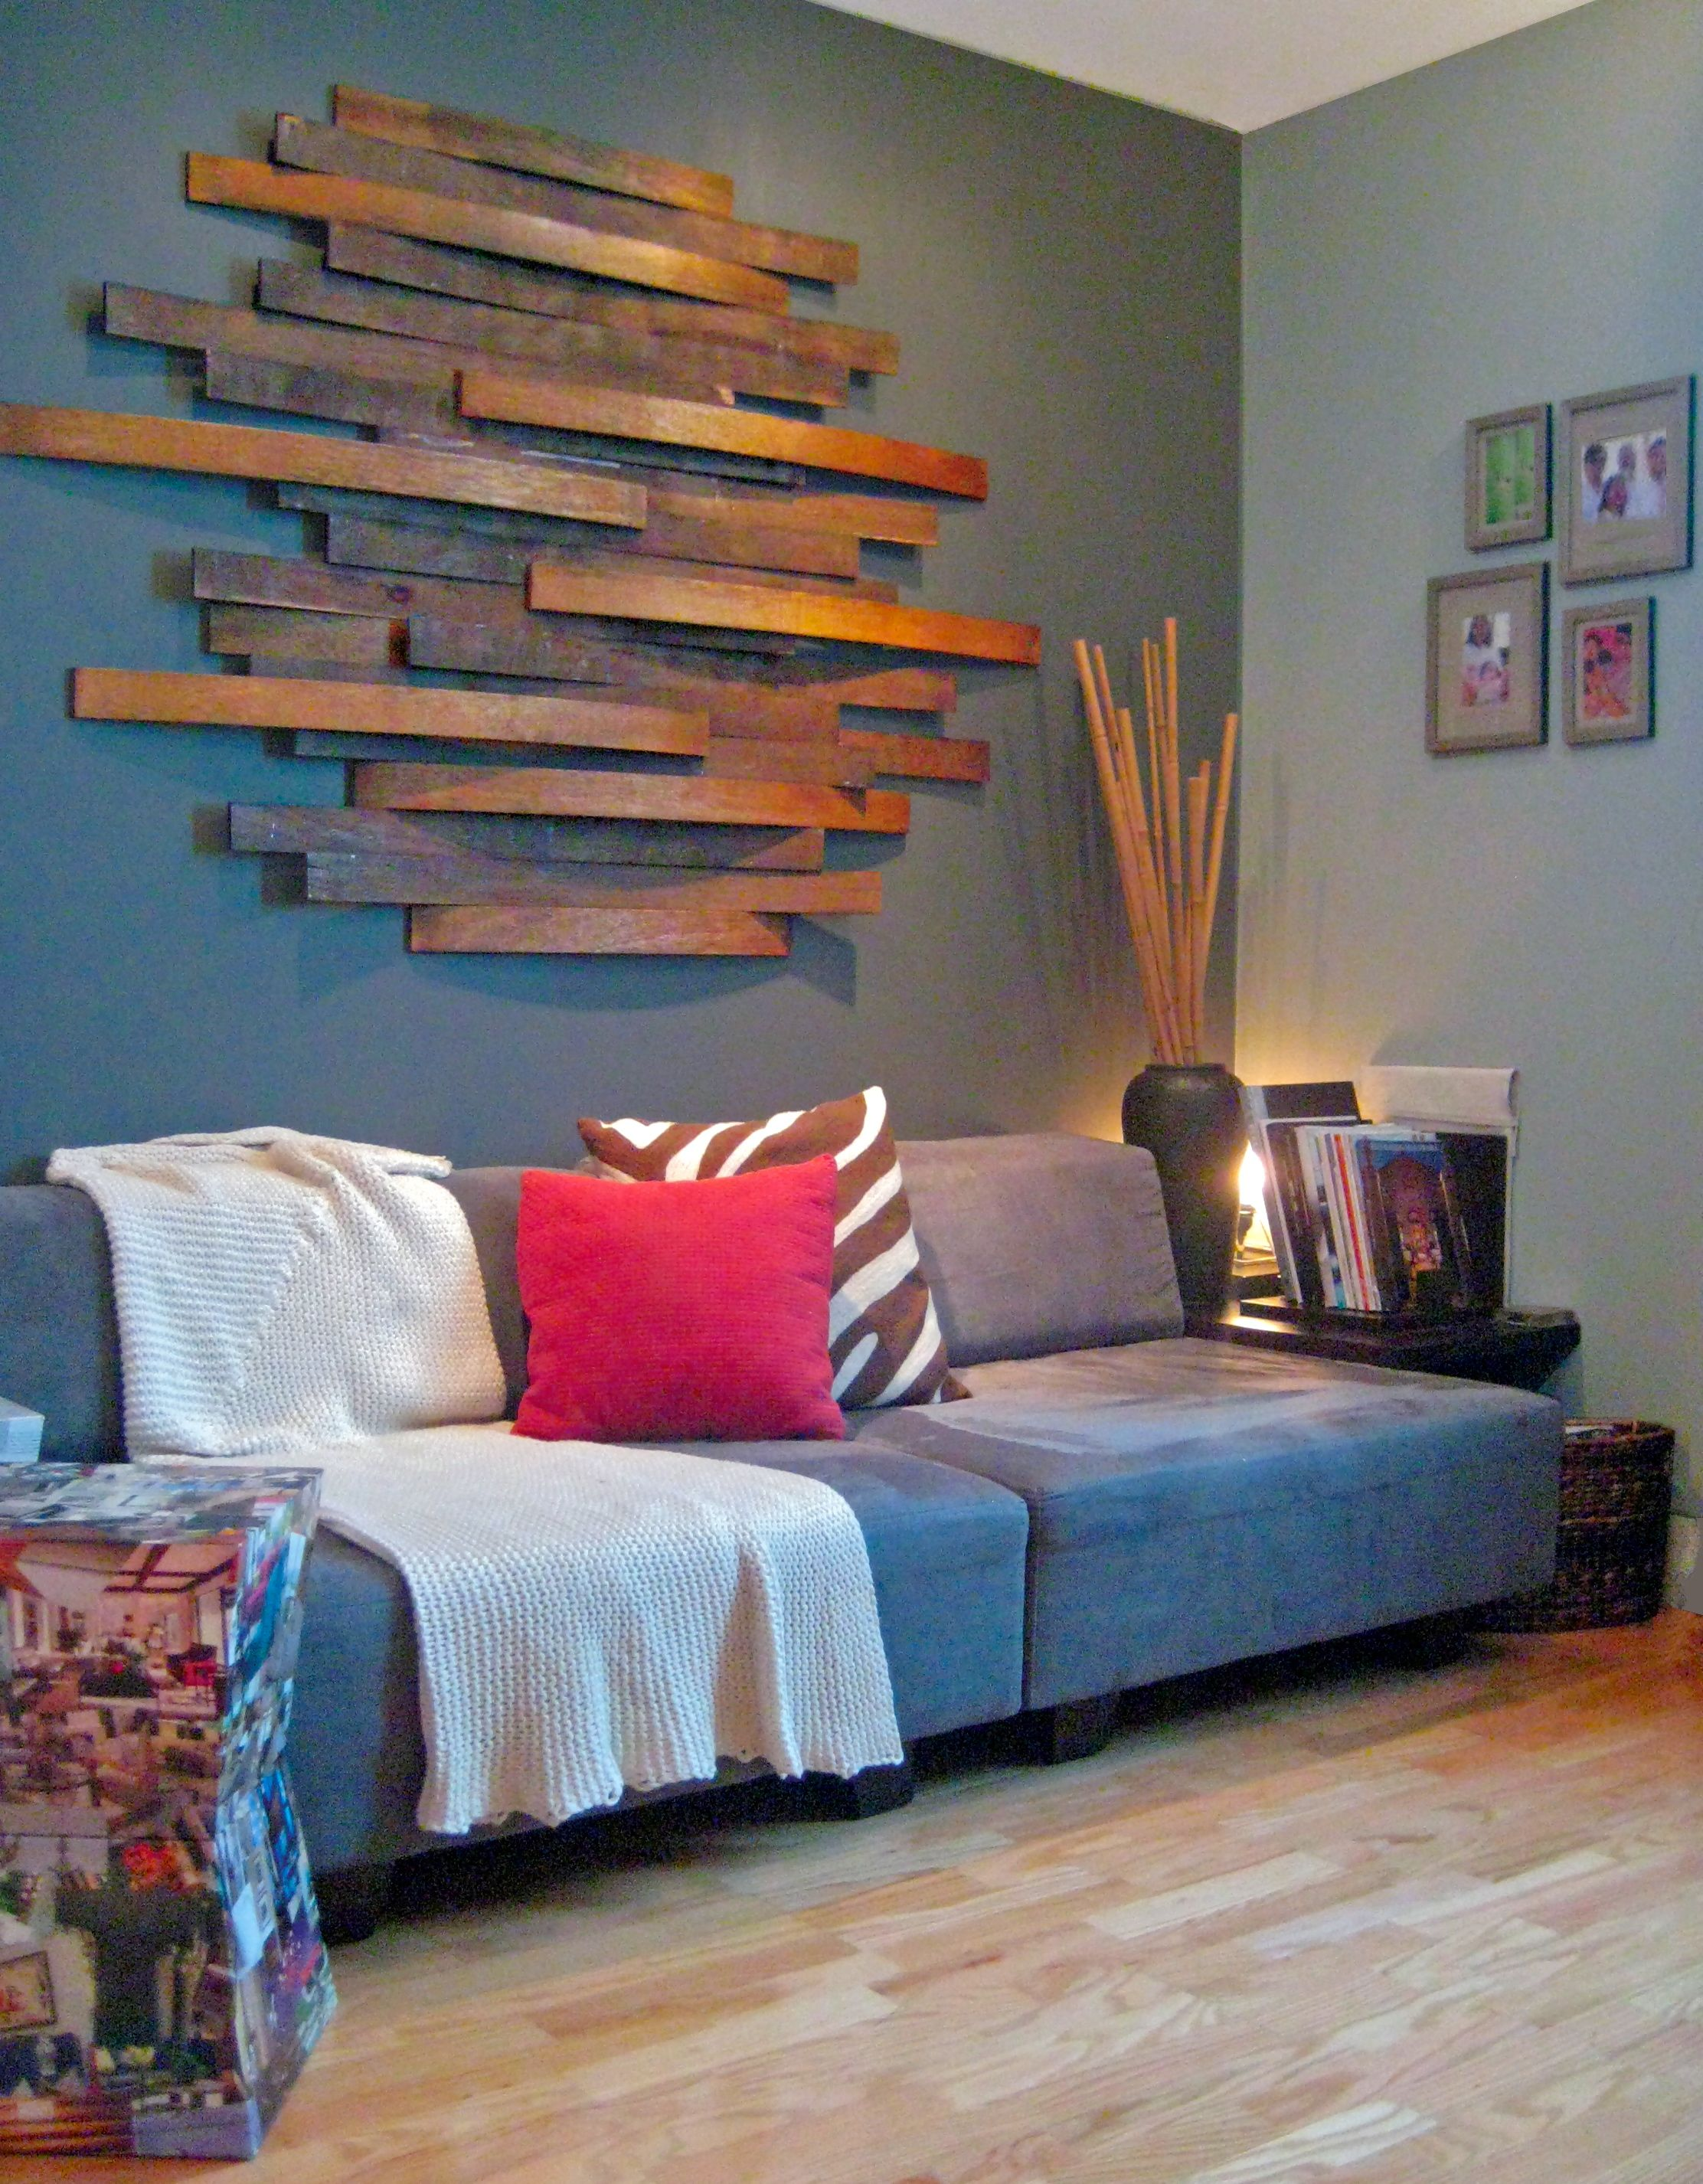 Bed wood slats staining wall mounting them randomly ud this